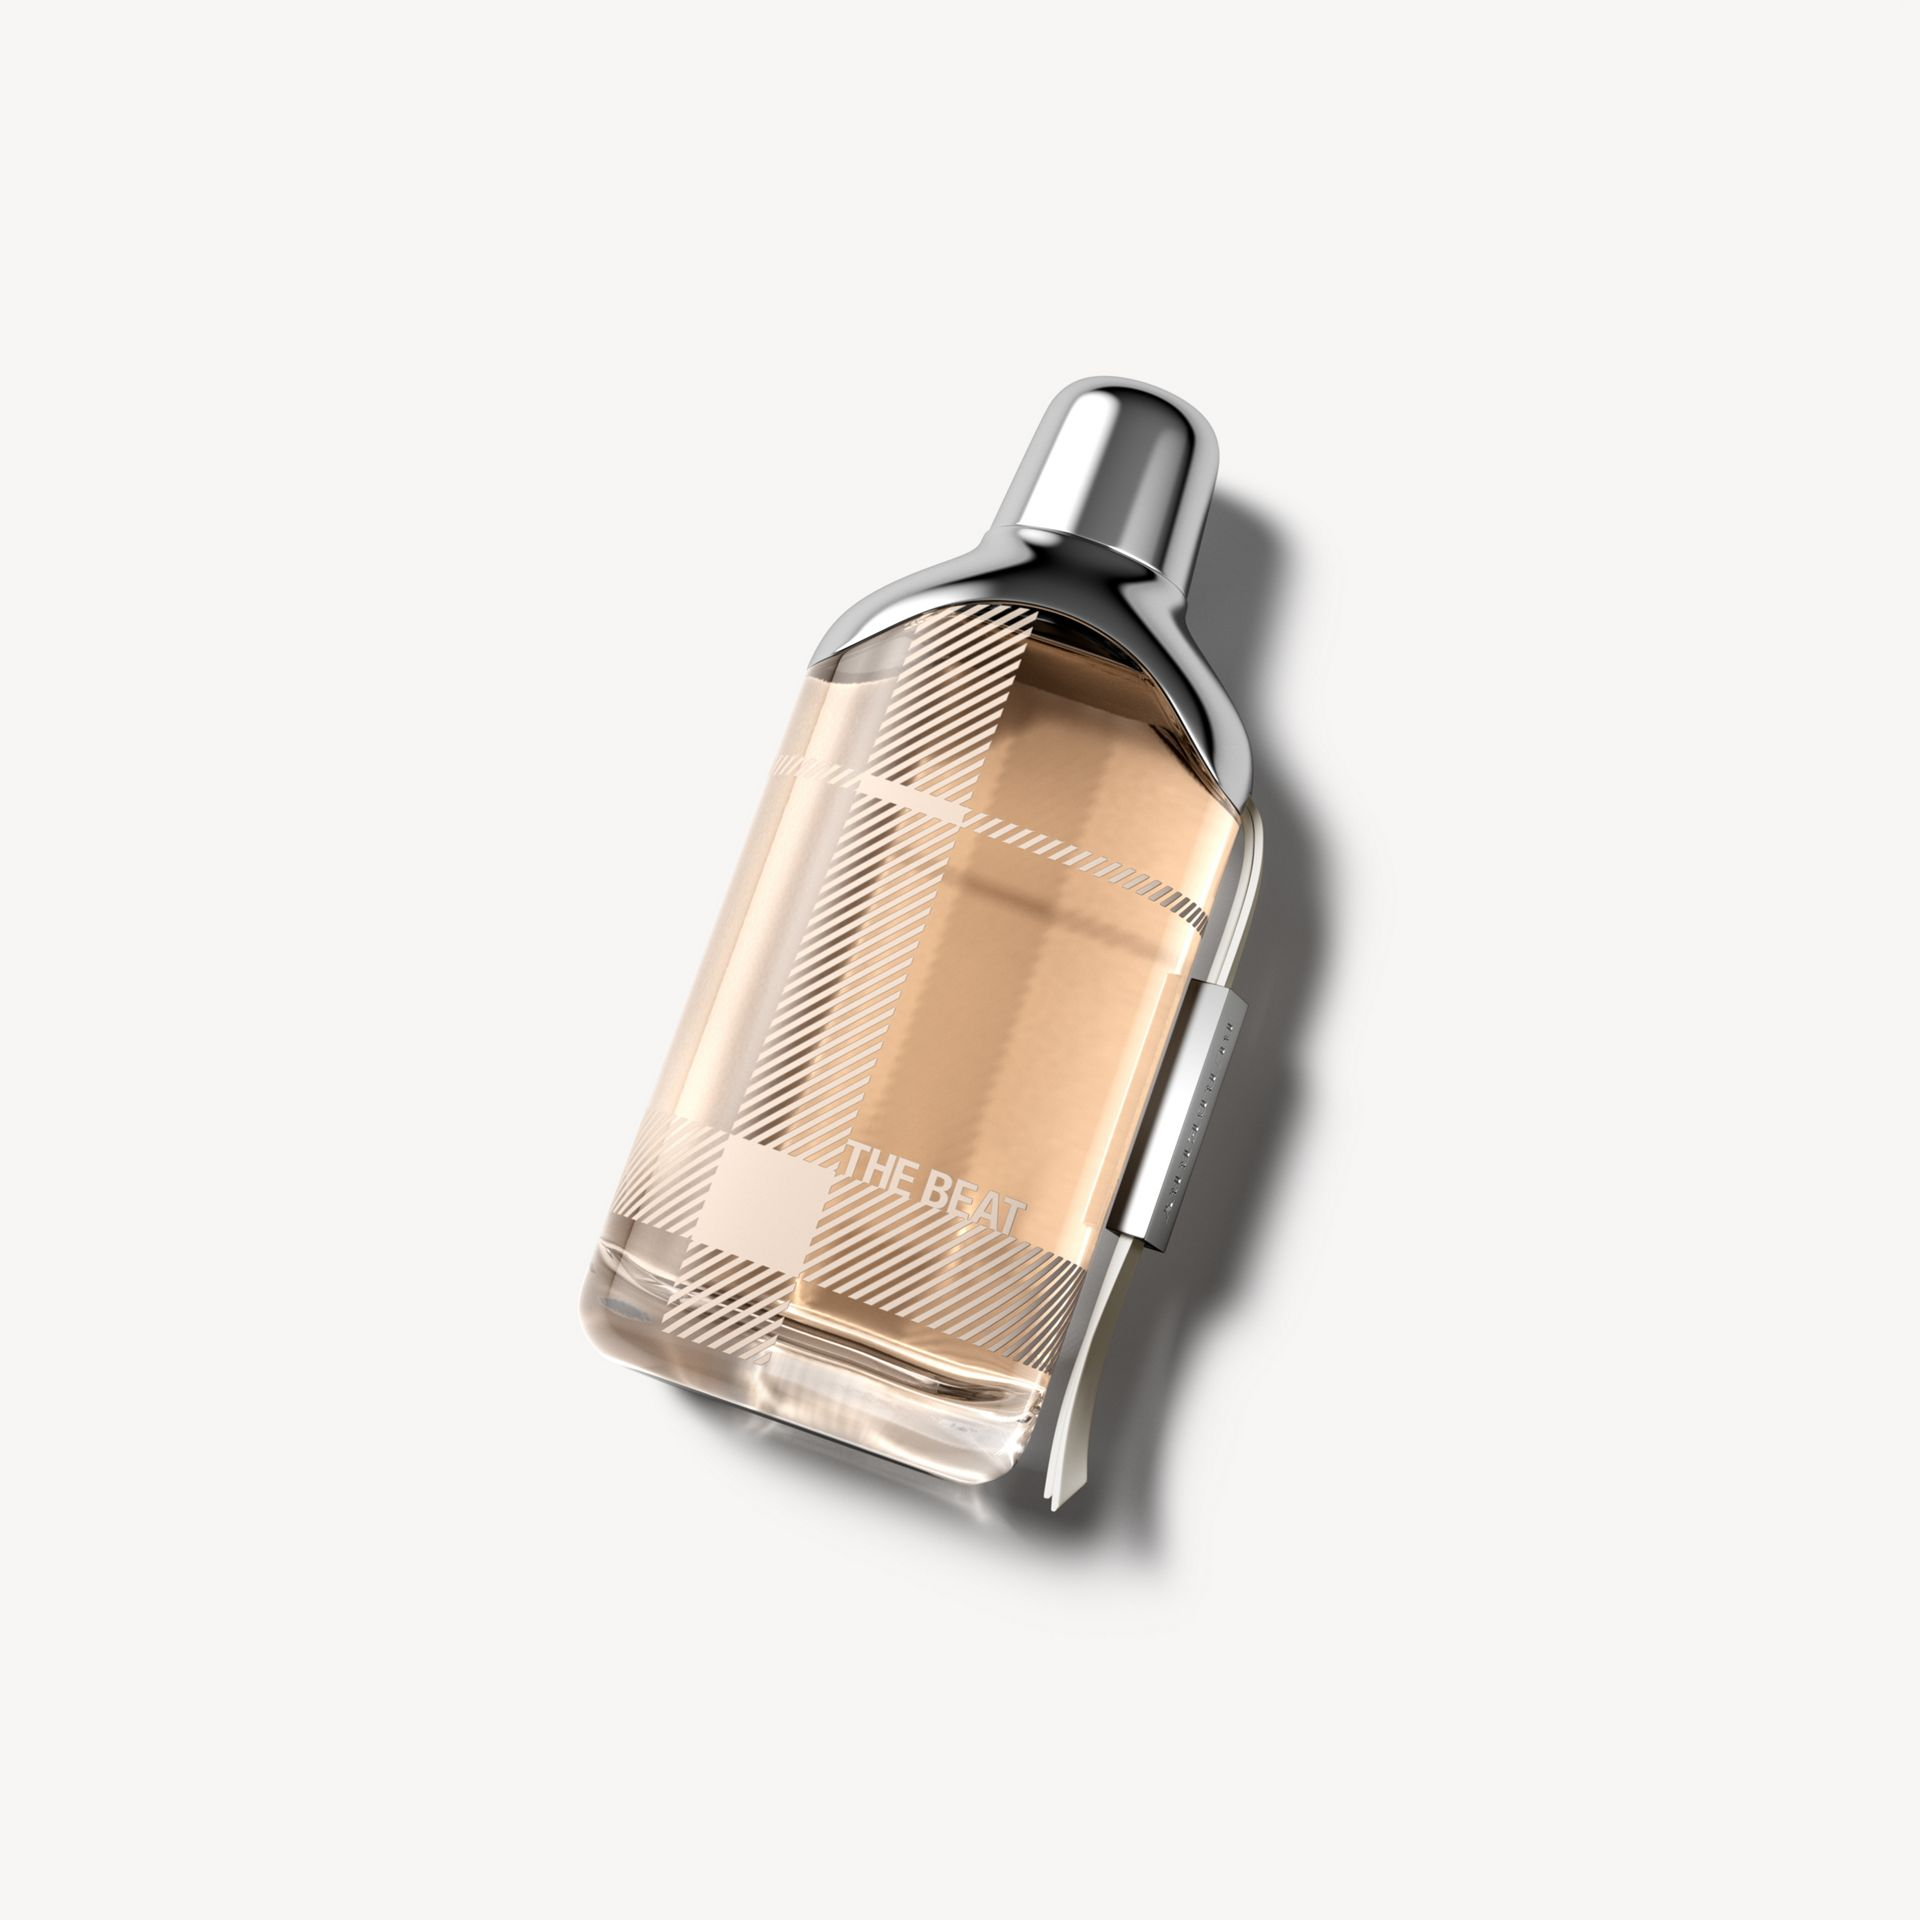 Burberry The Beat Eau de Parfum 75ml - gallery image 1